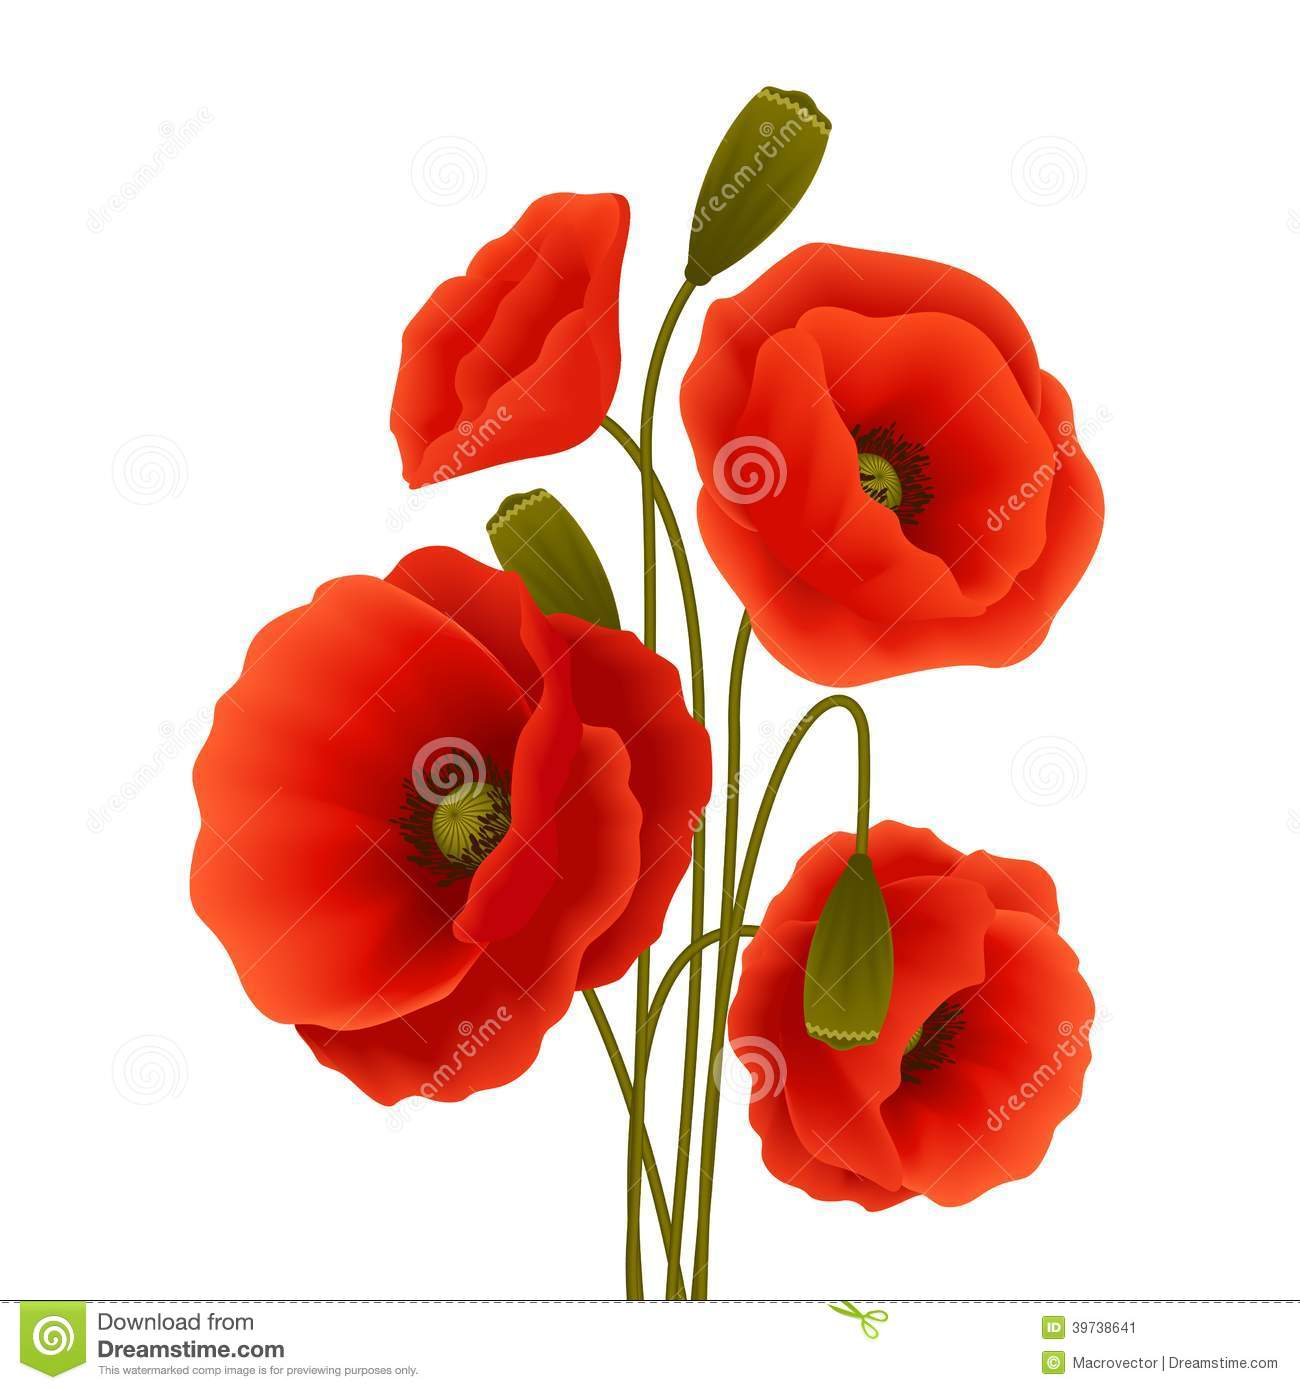 Poppy Flower Poster Stock Vector Illustration Of Decorative 39738641